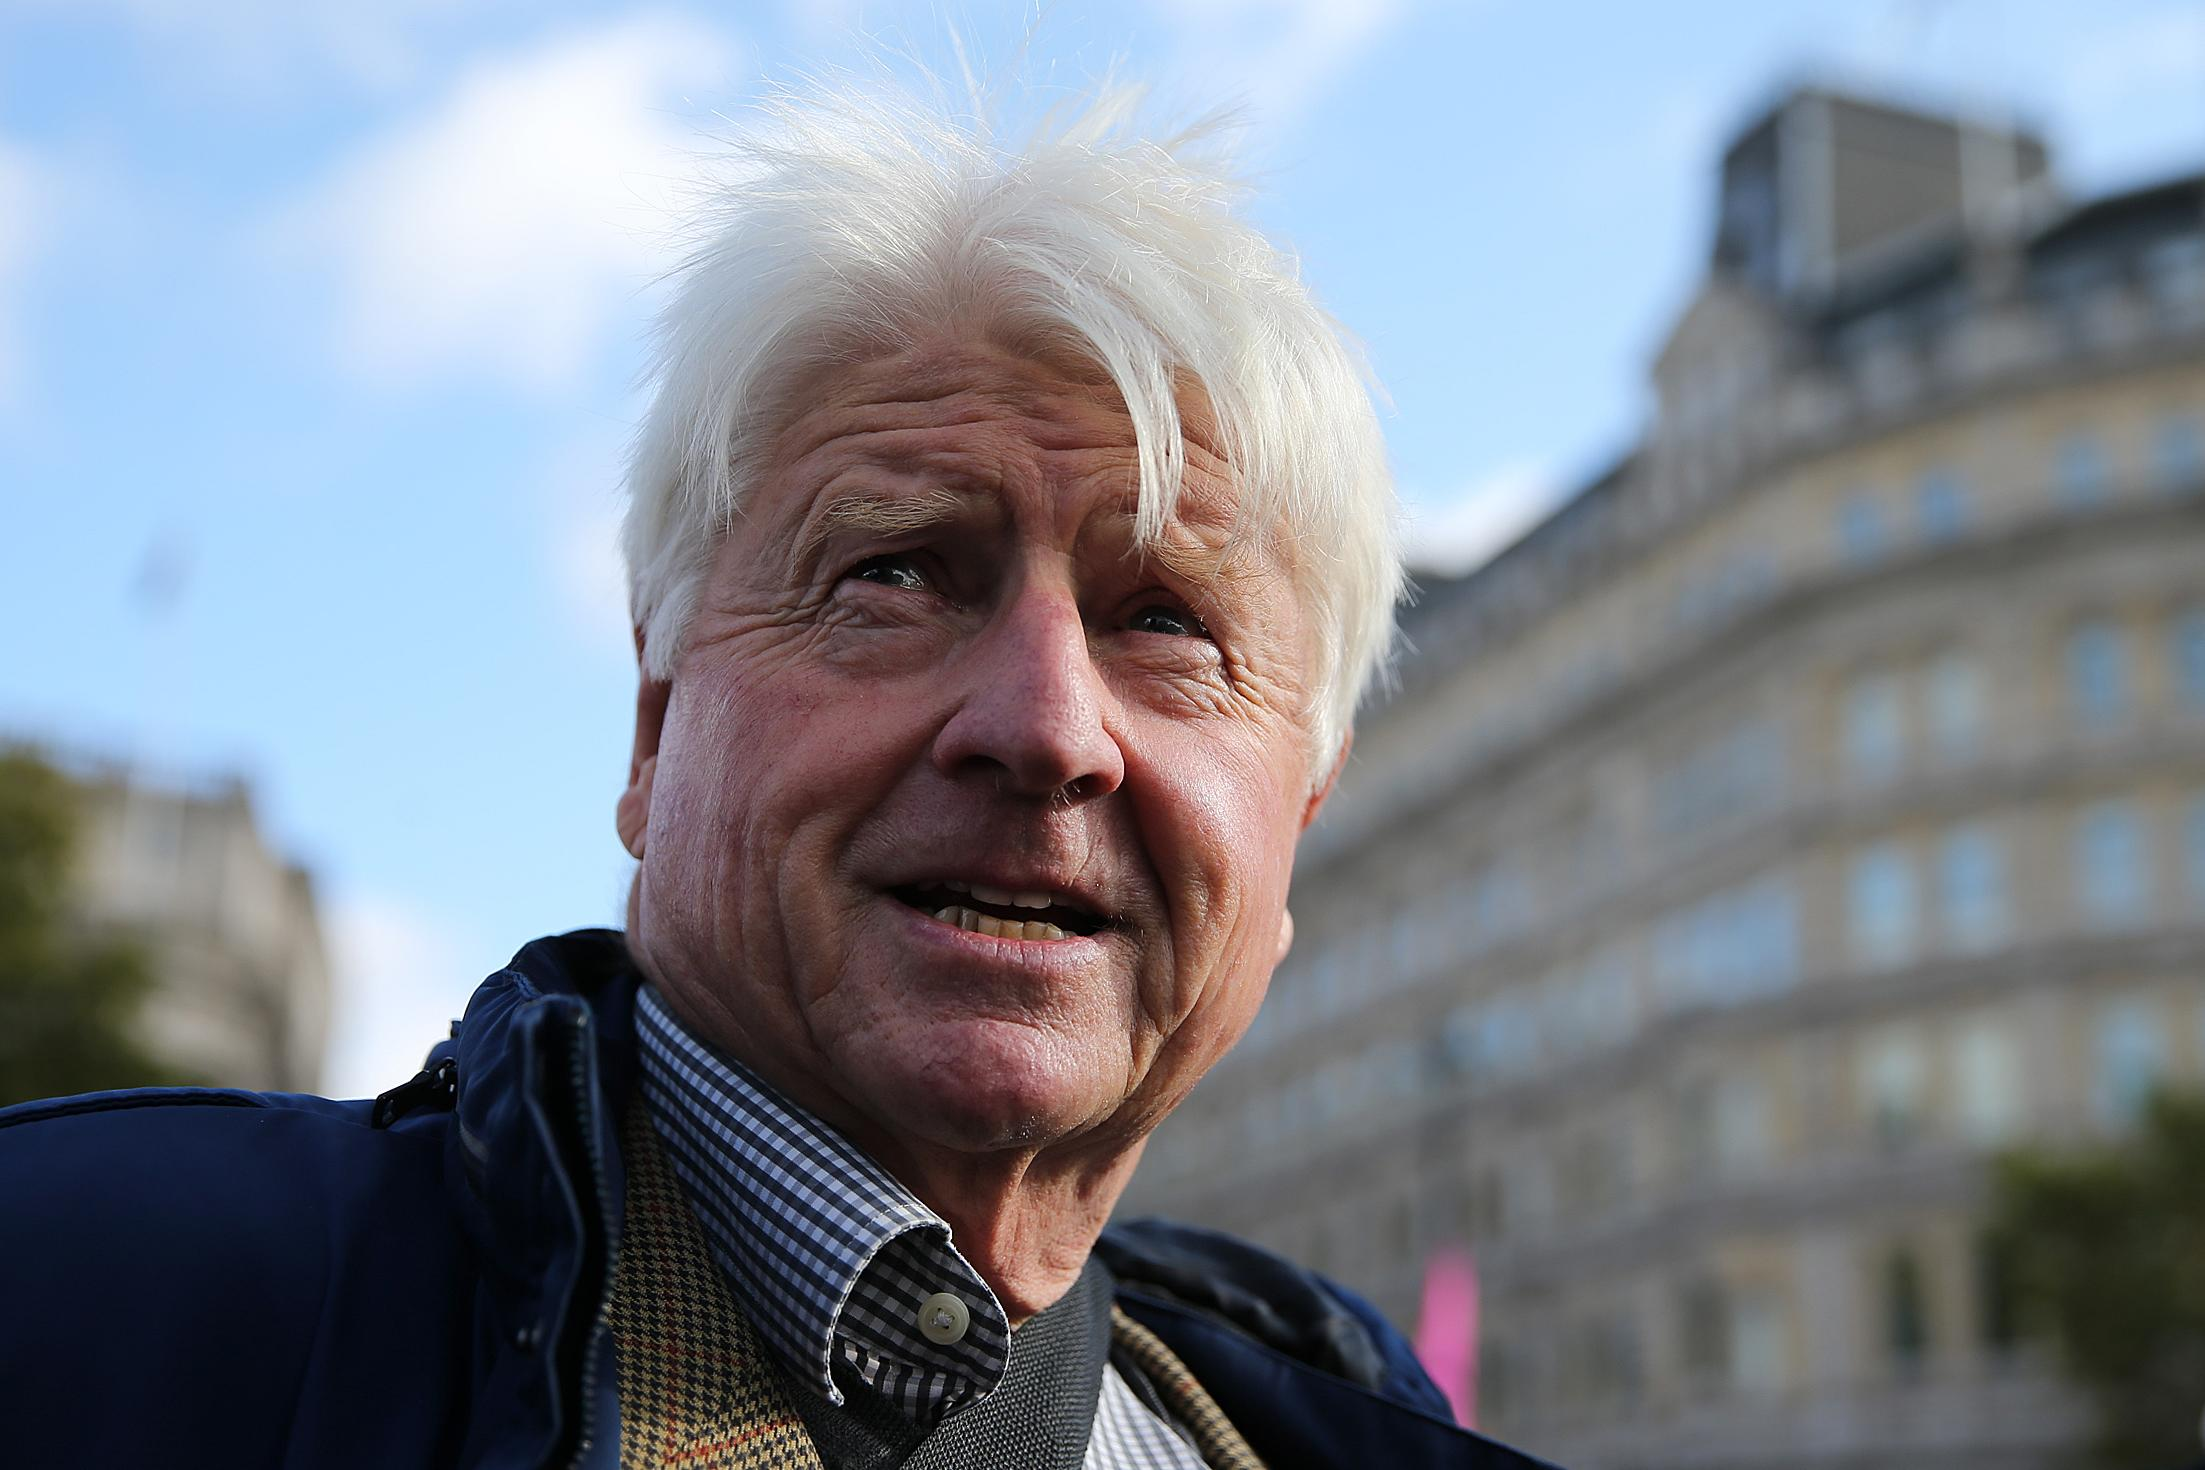 Stanley Johnson, father of Britain's Prime Minister Boris Johnson, arrives to speak on stage at Trafalgar Square, during the third day of climate change demonstrations by the Extinction Rebellion group in central London, on October 9, 2019. - Demonstrations occurred in 60 cities around the world this week, with thousands taking to the streets of New Delhi, Cape Town, Paris, Vienna, Madrid, and Buenos Aires. Extinction Rebellion is demanding that governments drastically cut carbon emissions. (Photo by ISABEL INFANTES / AFP) (Photo by ISABEL INFANTES/AFP via Getty Images)